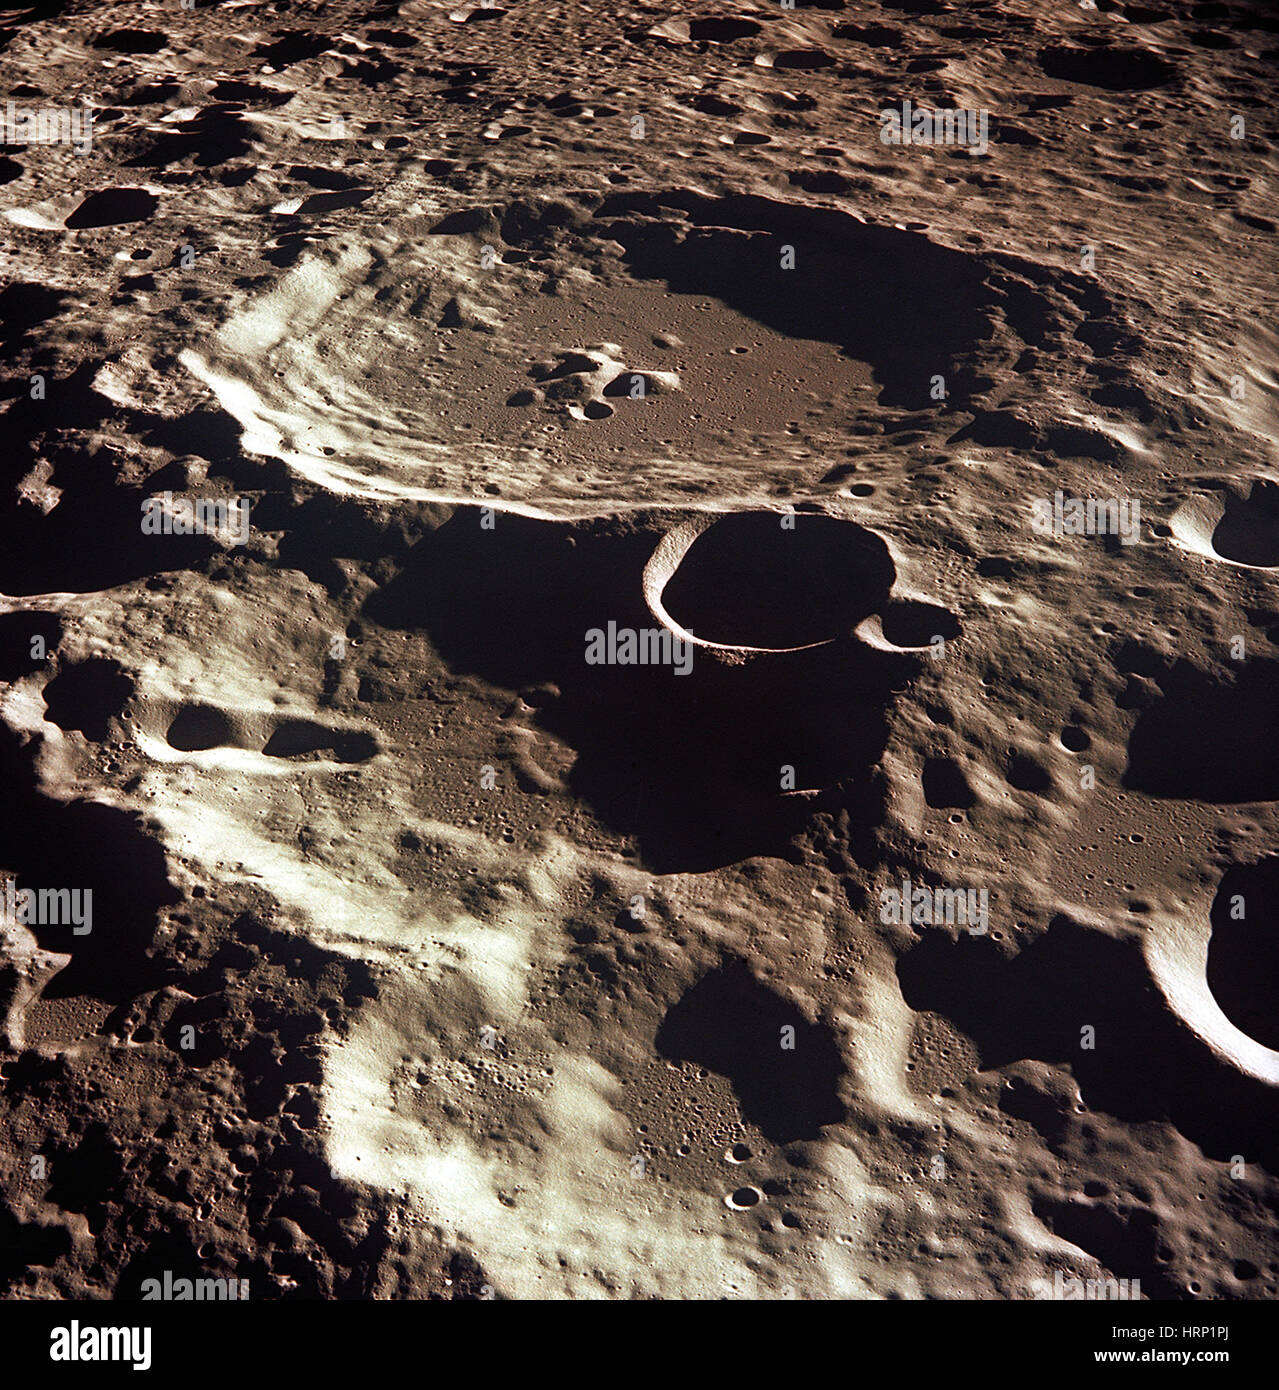 Daedalus Crater, The Moon, Apollo 11 Mission - Stock Image